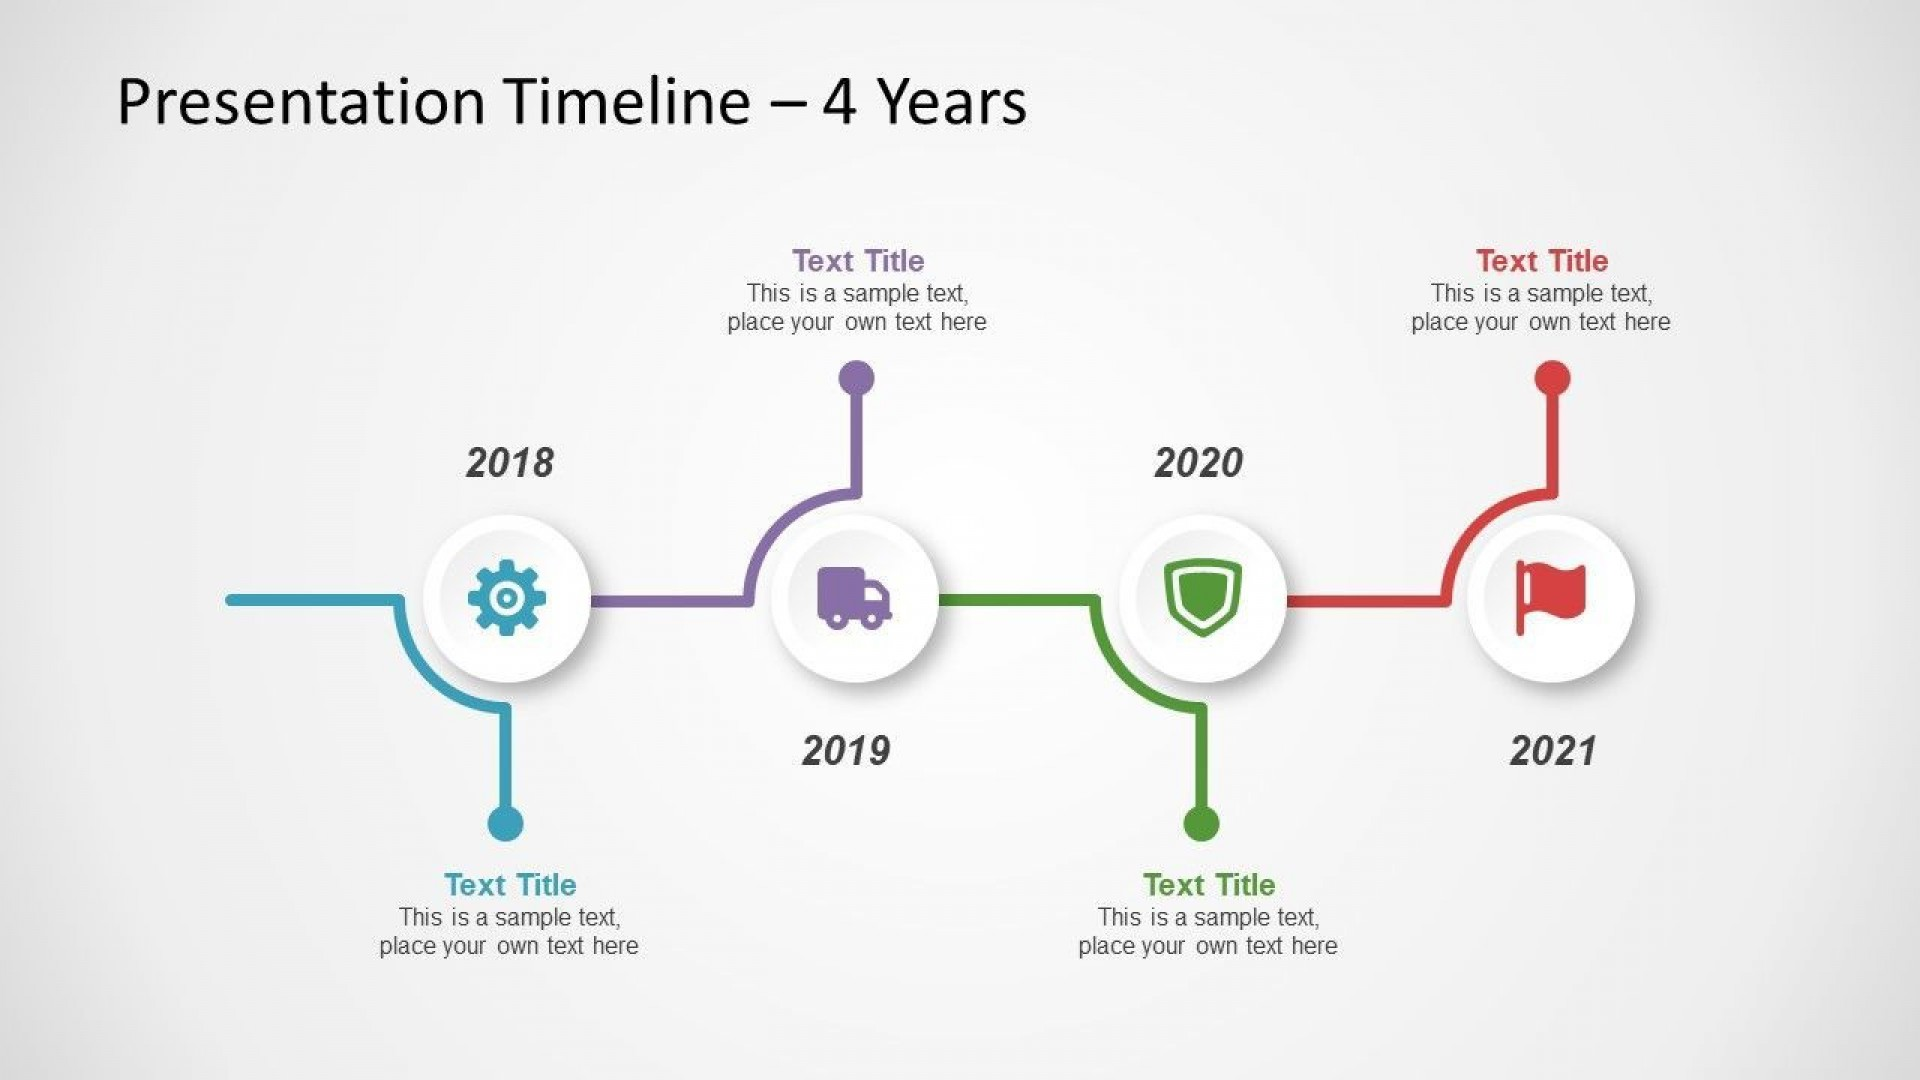 002 Exceptional Timeline Template Pptx Image  Powerpoint Project1920